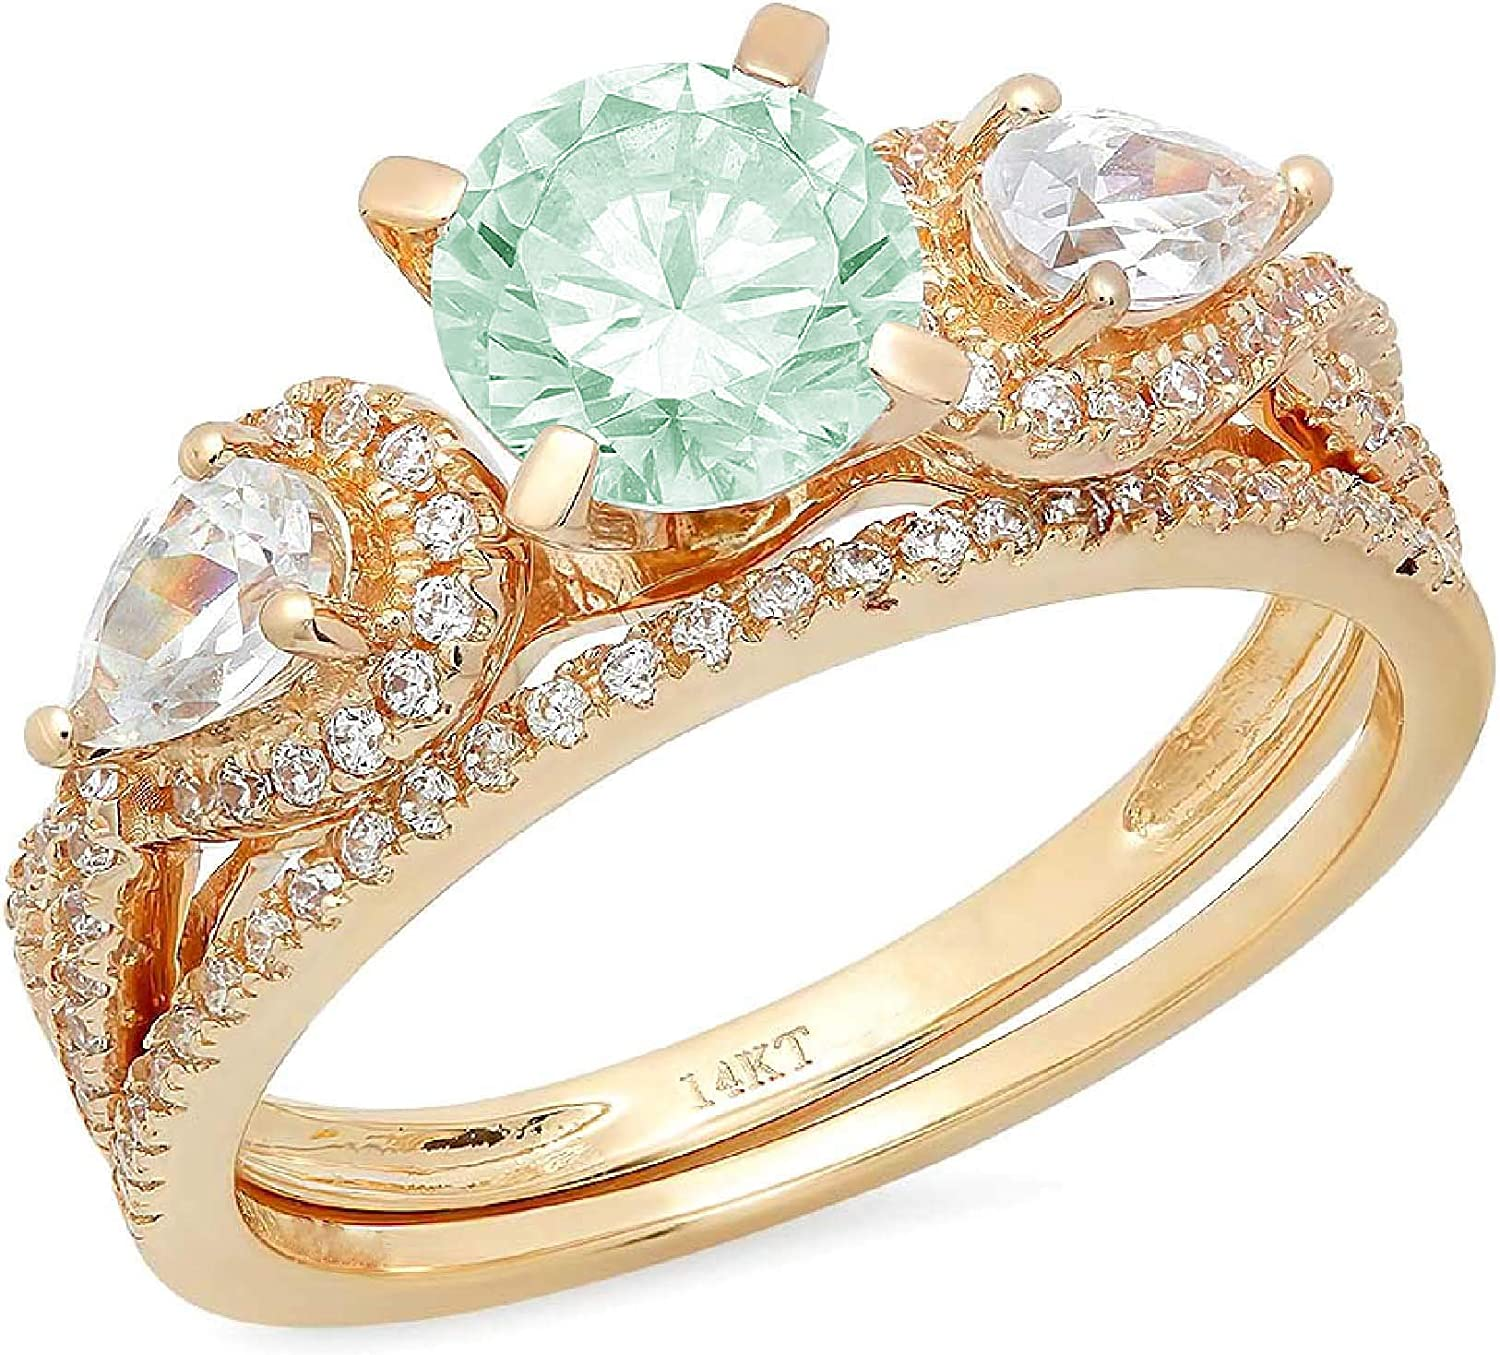 1.97ct Round Pear Cut Solitaire 3 stone With Accent Light Sea Green Simulated Diamond Designer Statement Classic Ring Band Set Real Solid 14k Yellow Gold